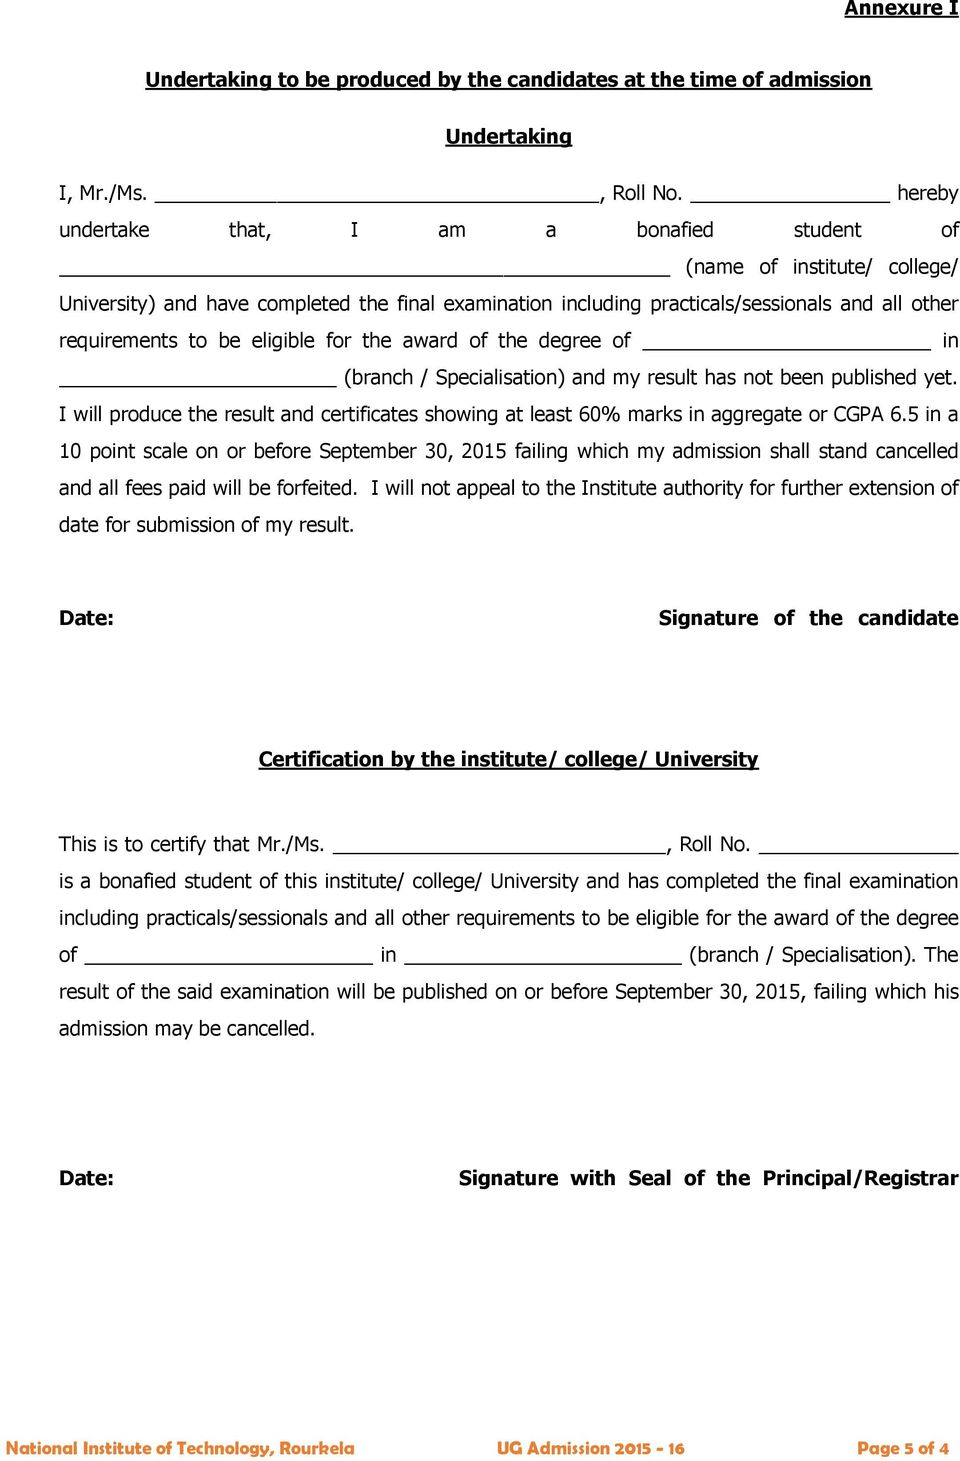 eligible for the award of the degree of in (branch / Specialisation) and my result has not been published yet.